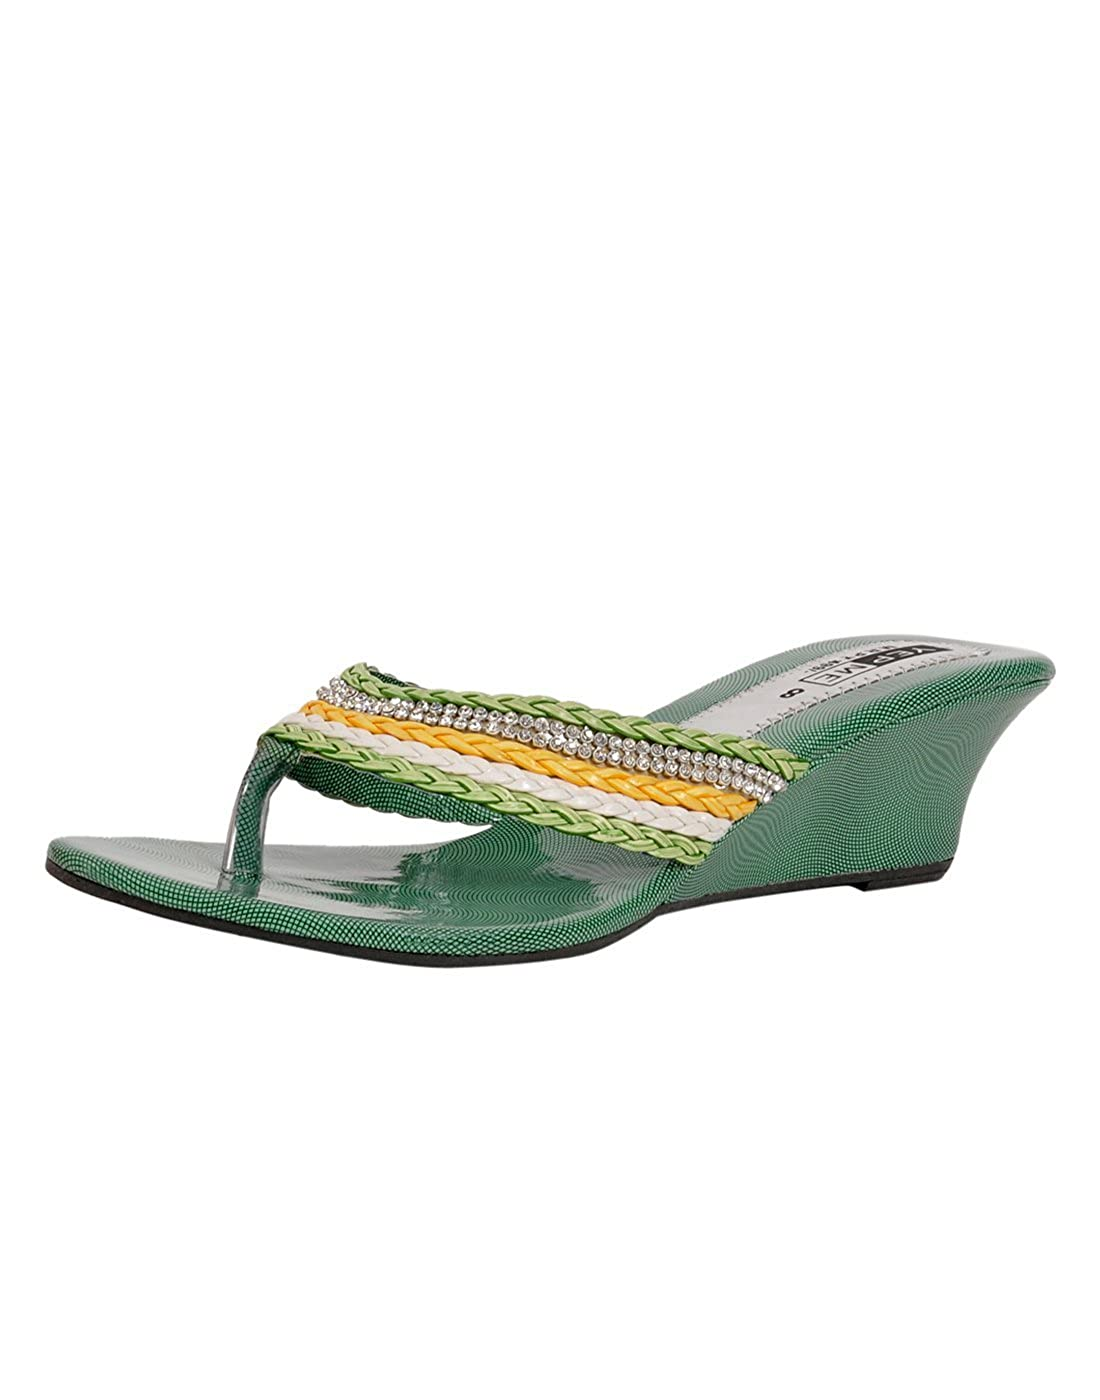 f8ded7d2a9349 Yepme Women's Green Wedges YPWFOOT8688_8 UK: Buy Online at Low Prices in  India - Amazon.in